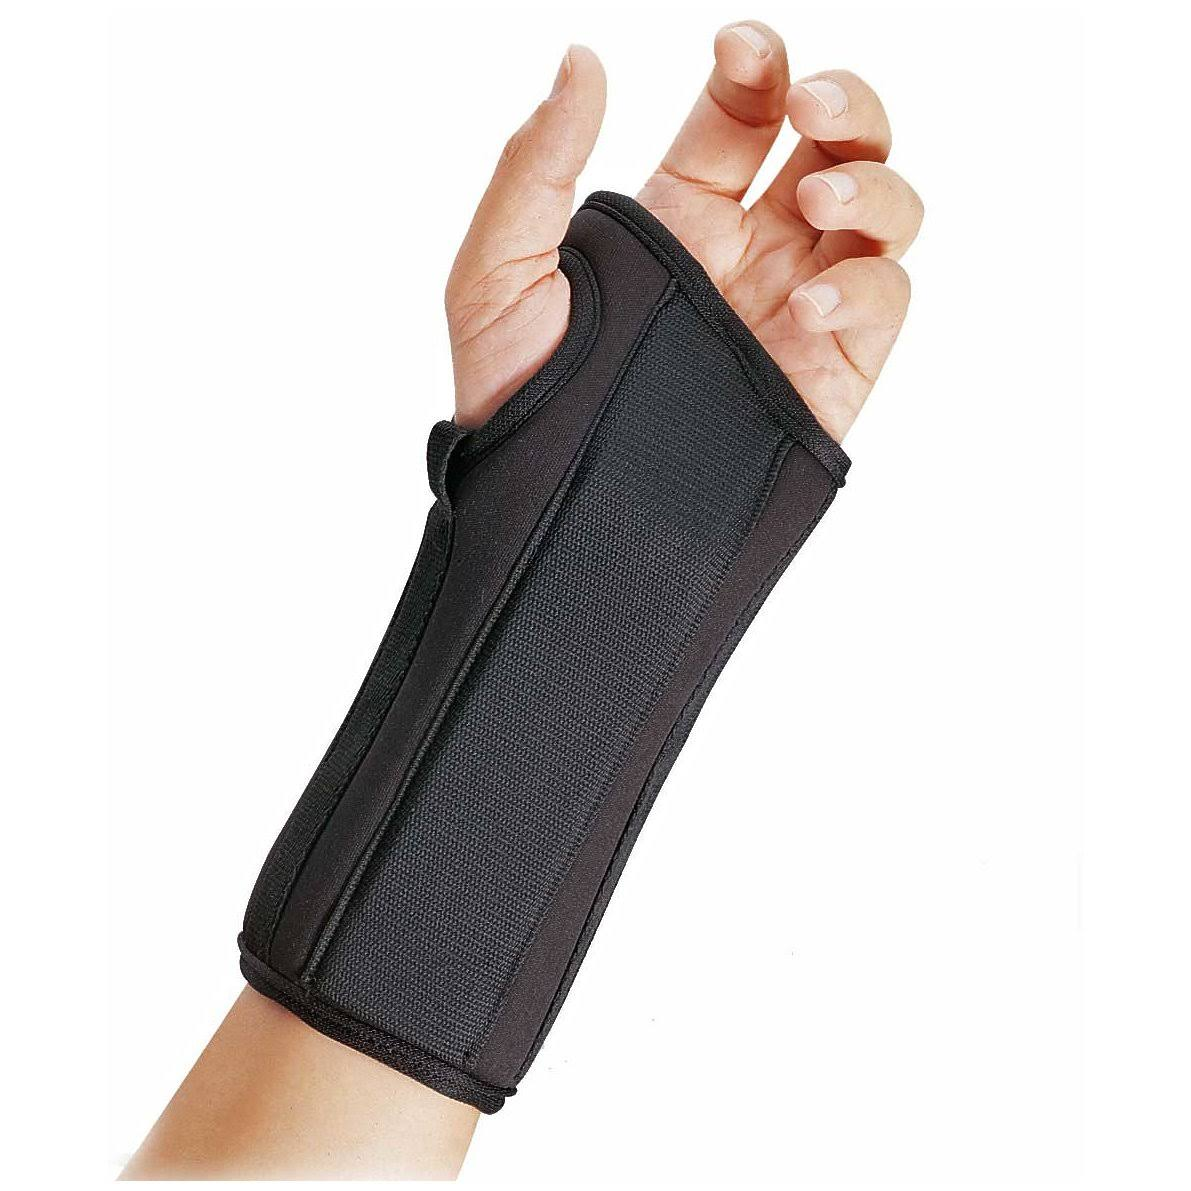 Pro-Lite FLA Orthopaedics Wrist Splint Support Brace - 20cm, Right